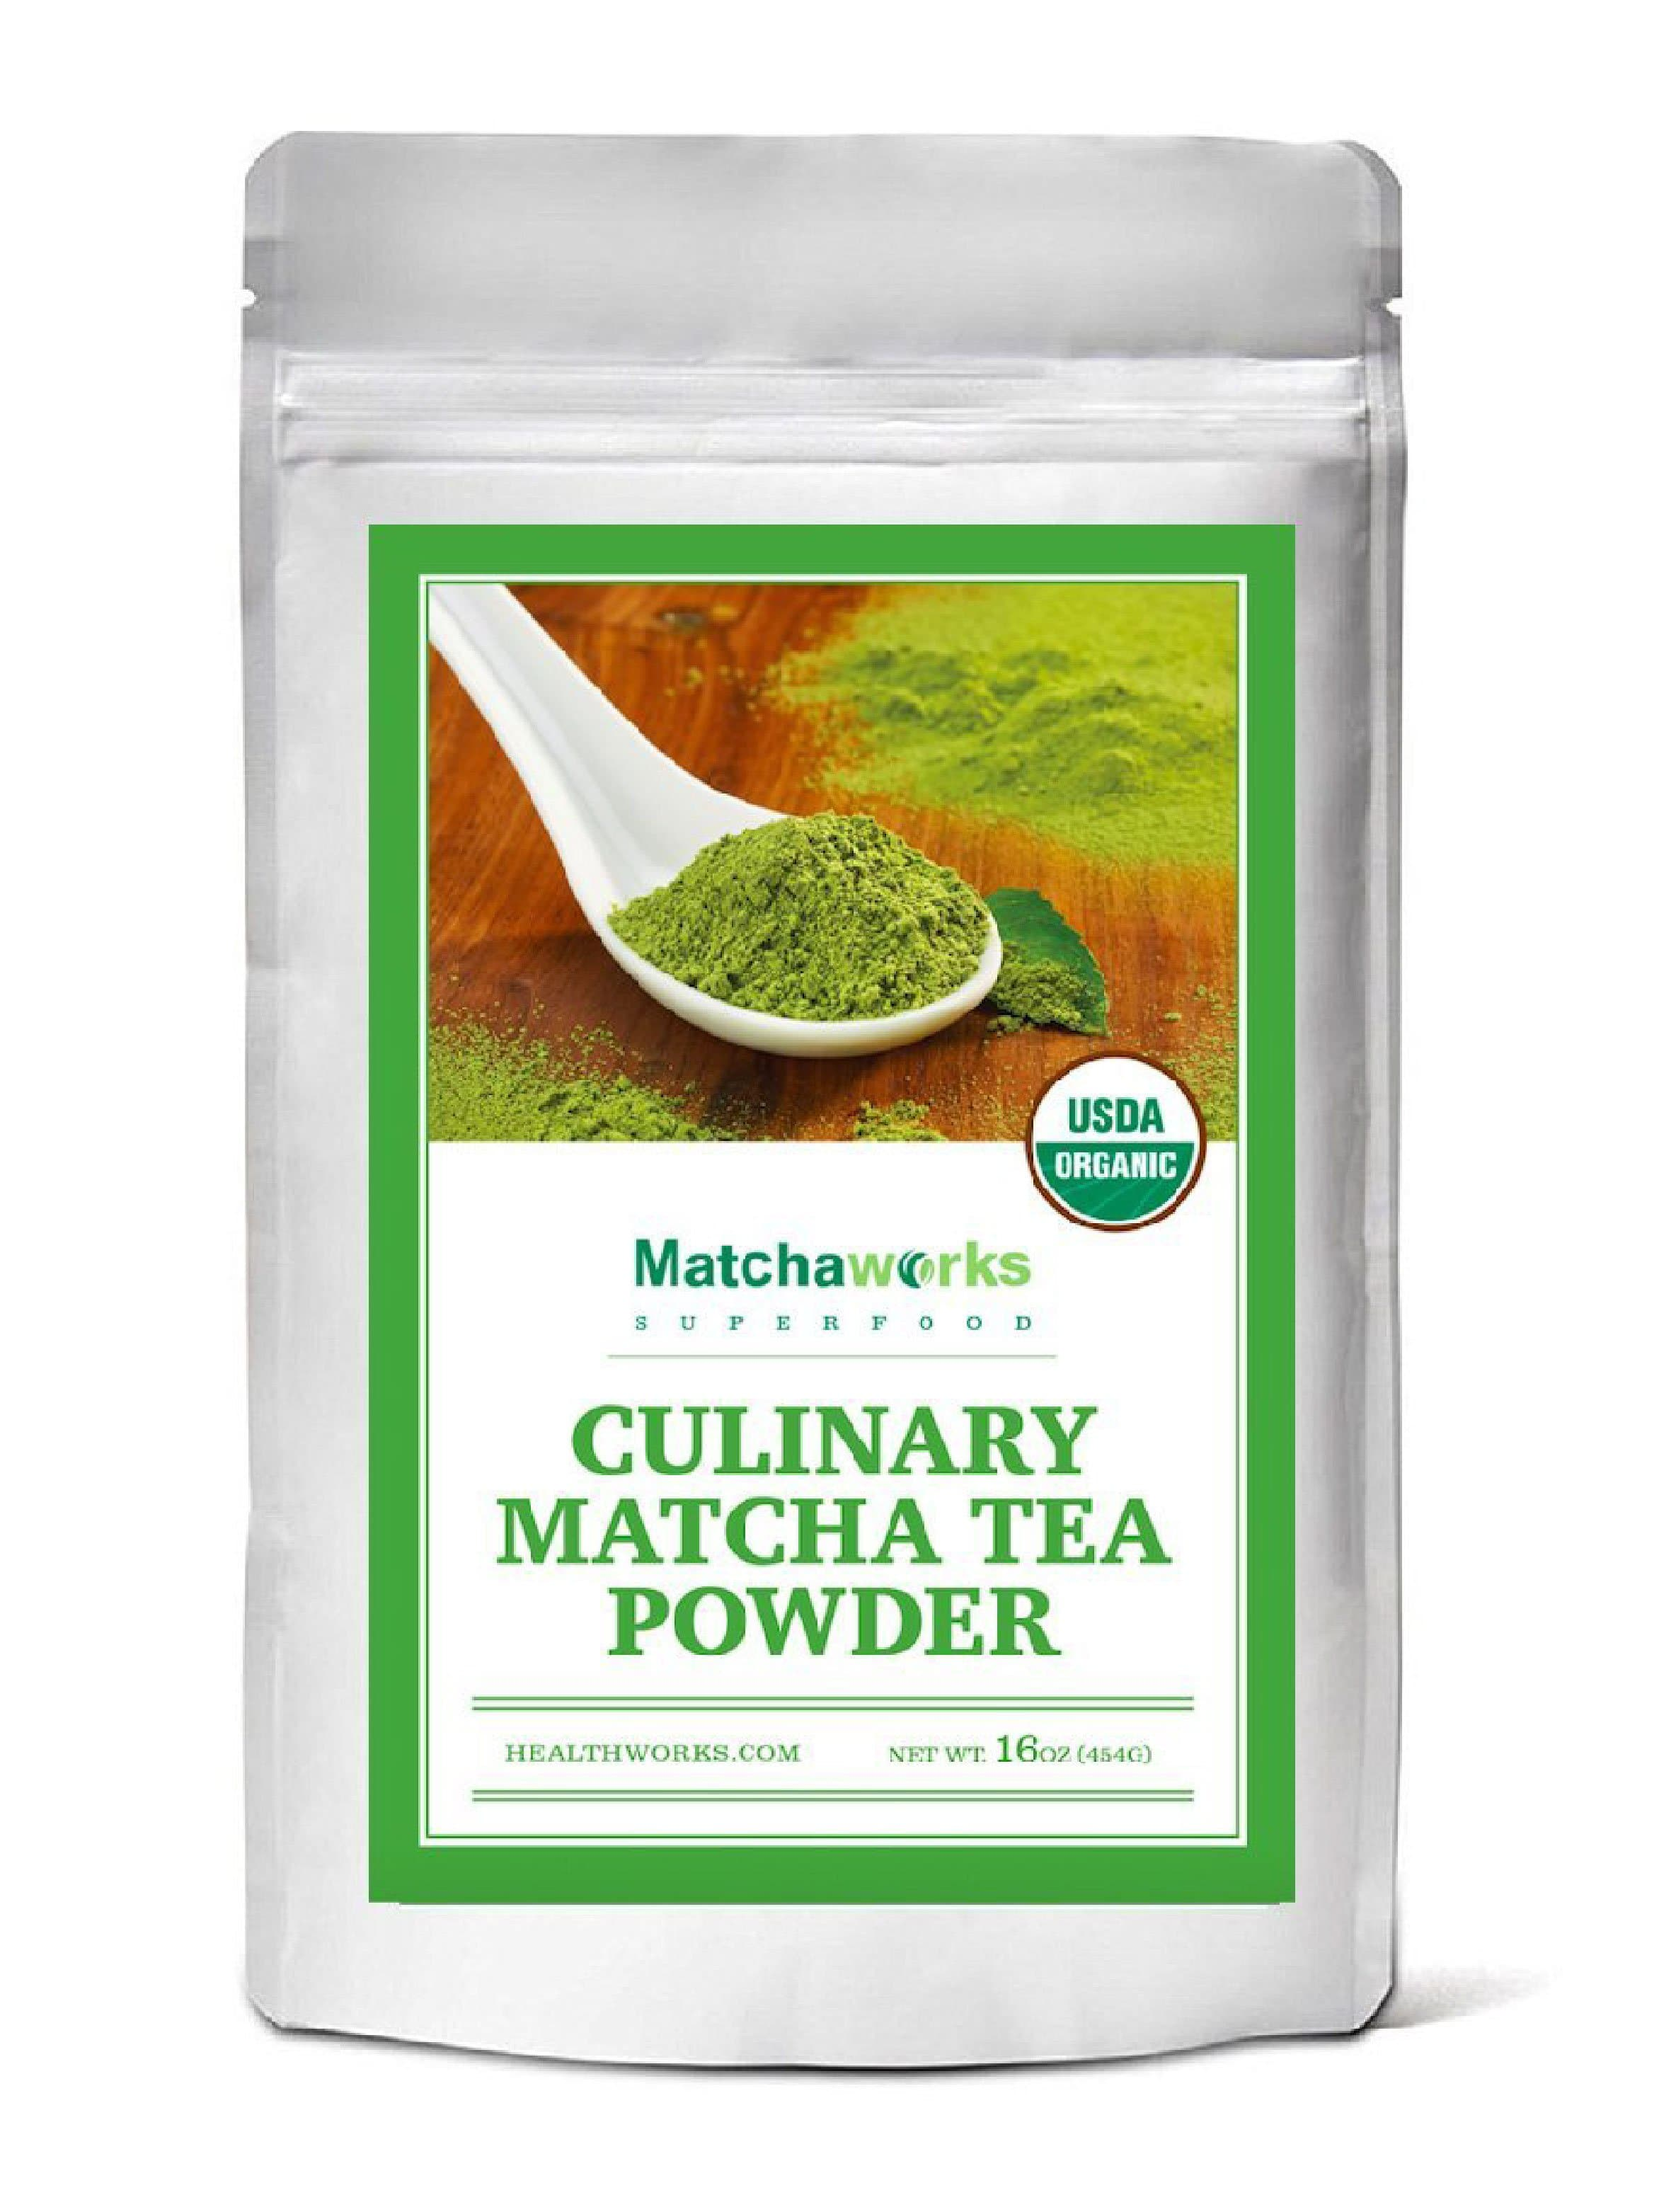 Matchaworks Matcha Green Tea Powder Organic, Culinary Grade, 16oz - Healthworks Superfood Organic